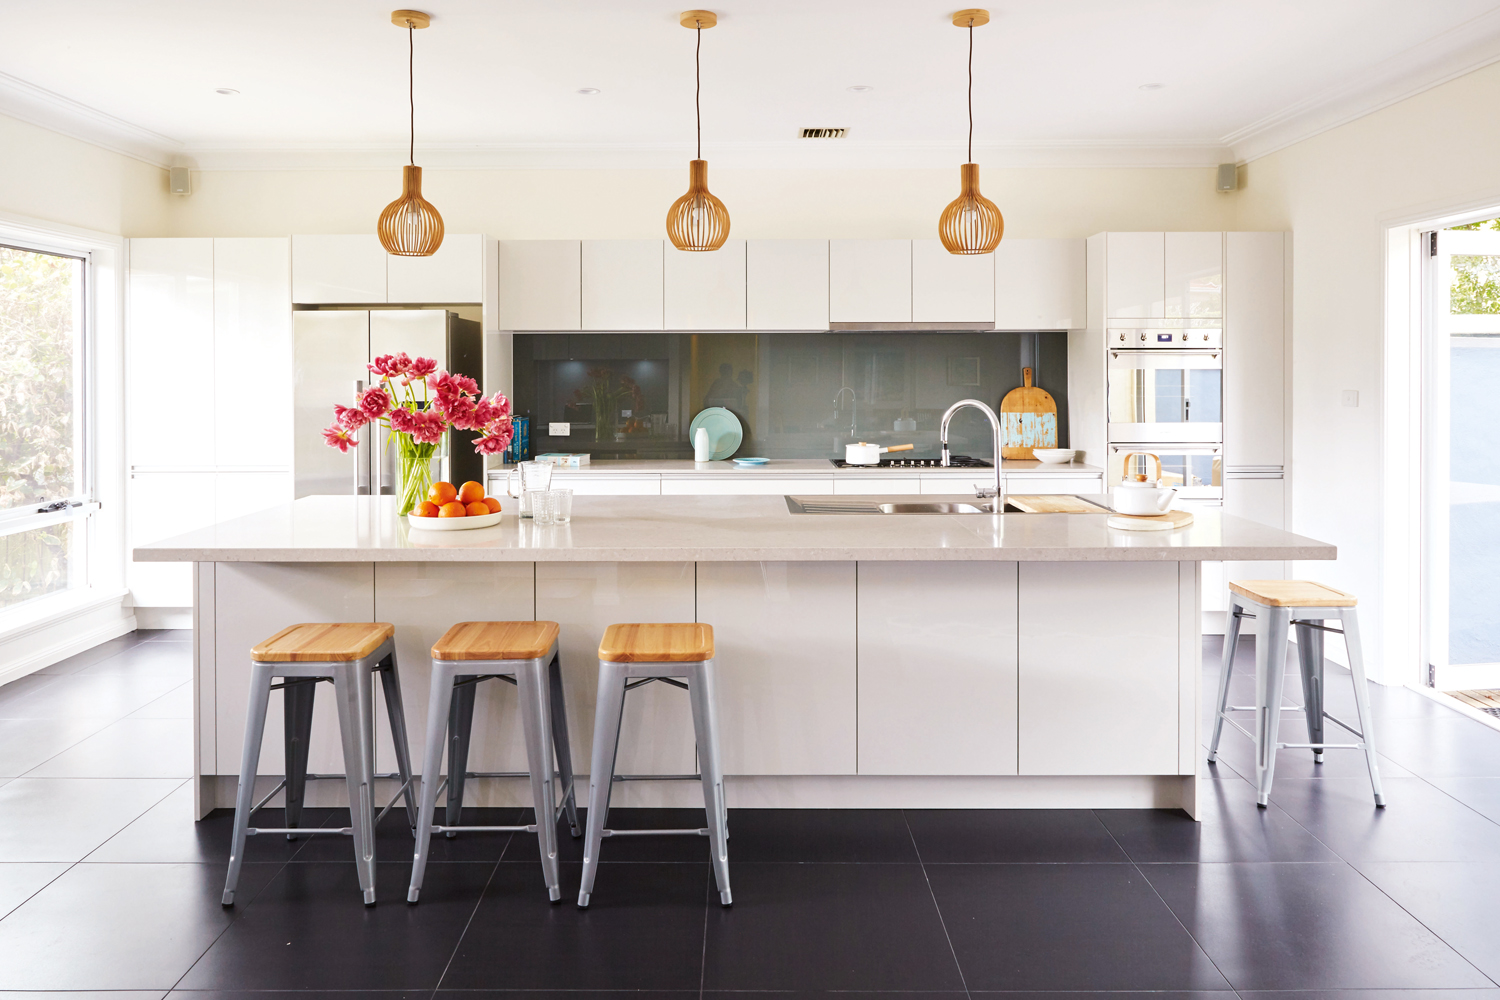 This kitchen was designed with a timeless style that could grow and change with a young family